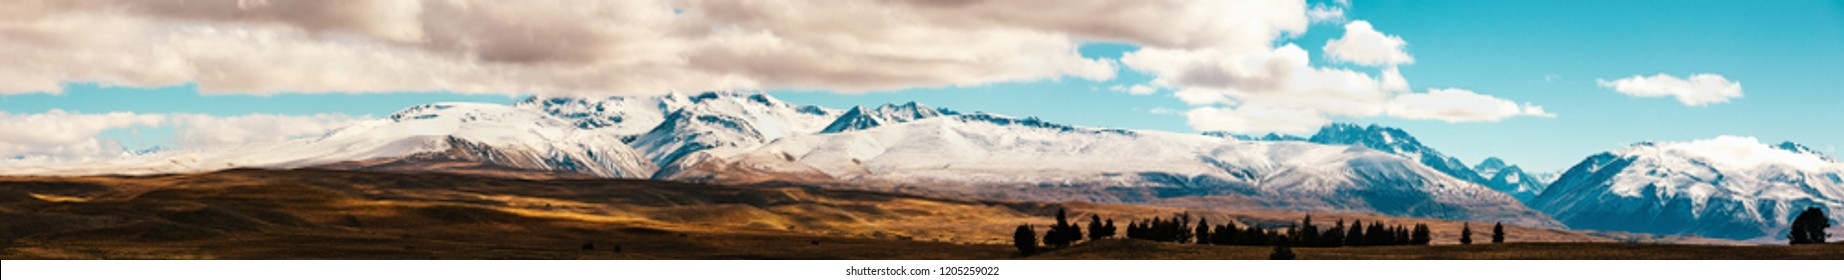 New Zealand scenic mountain landscape shot at Mount Cook National Park daytime